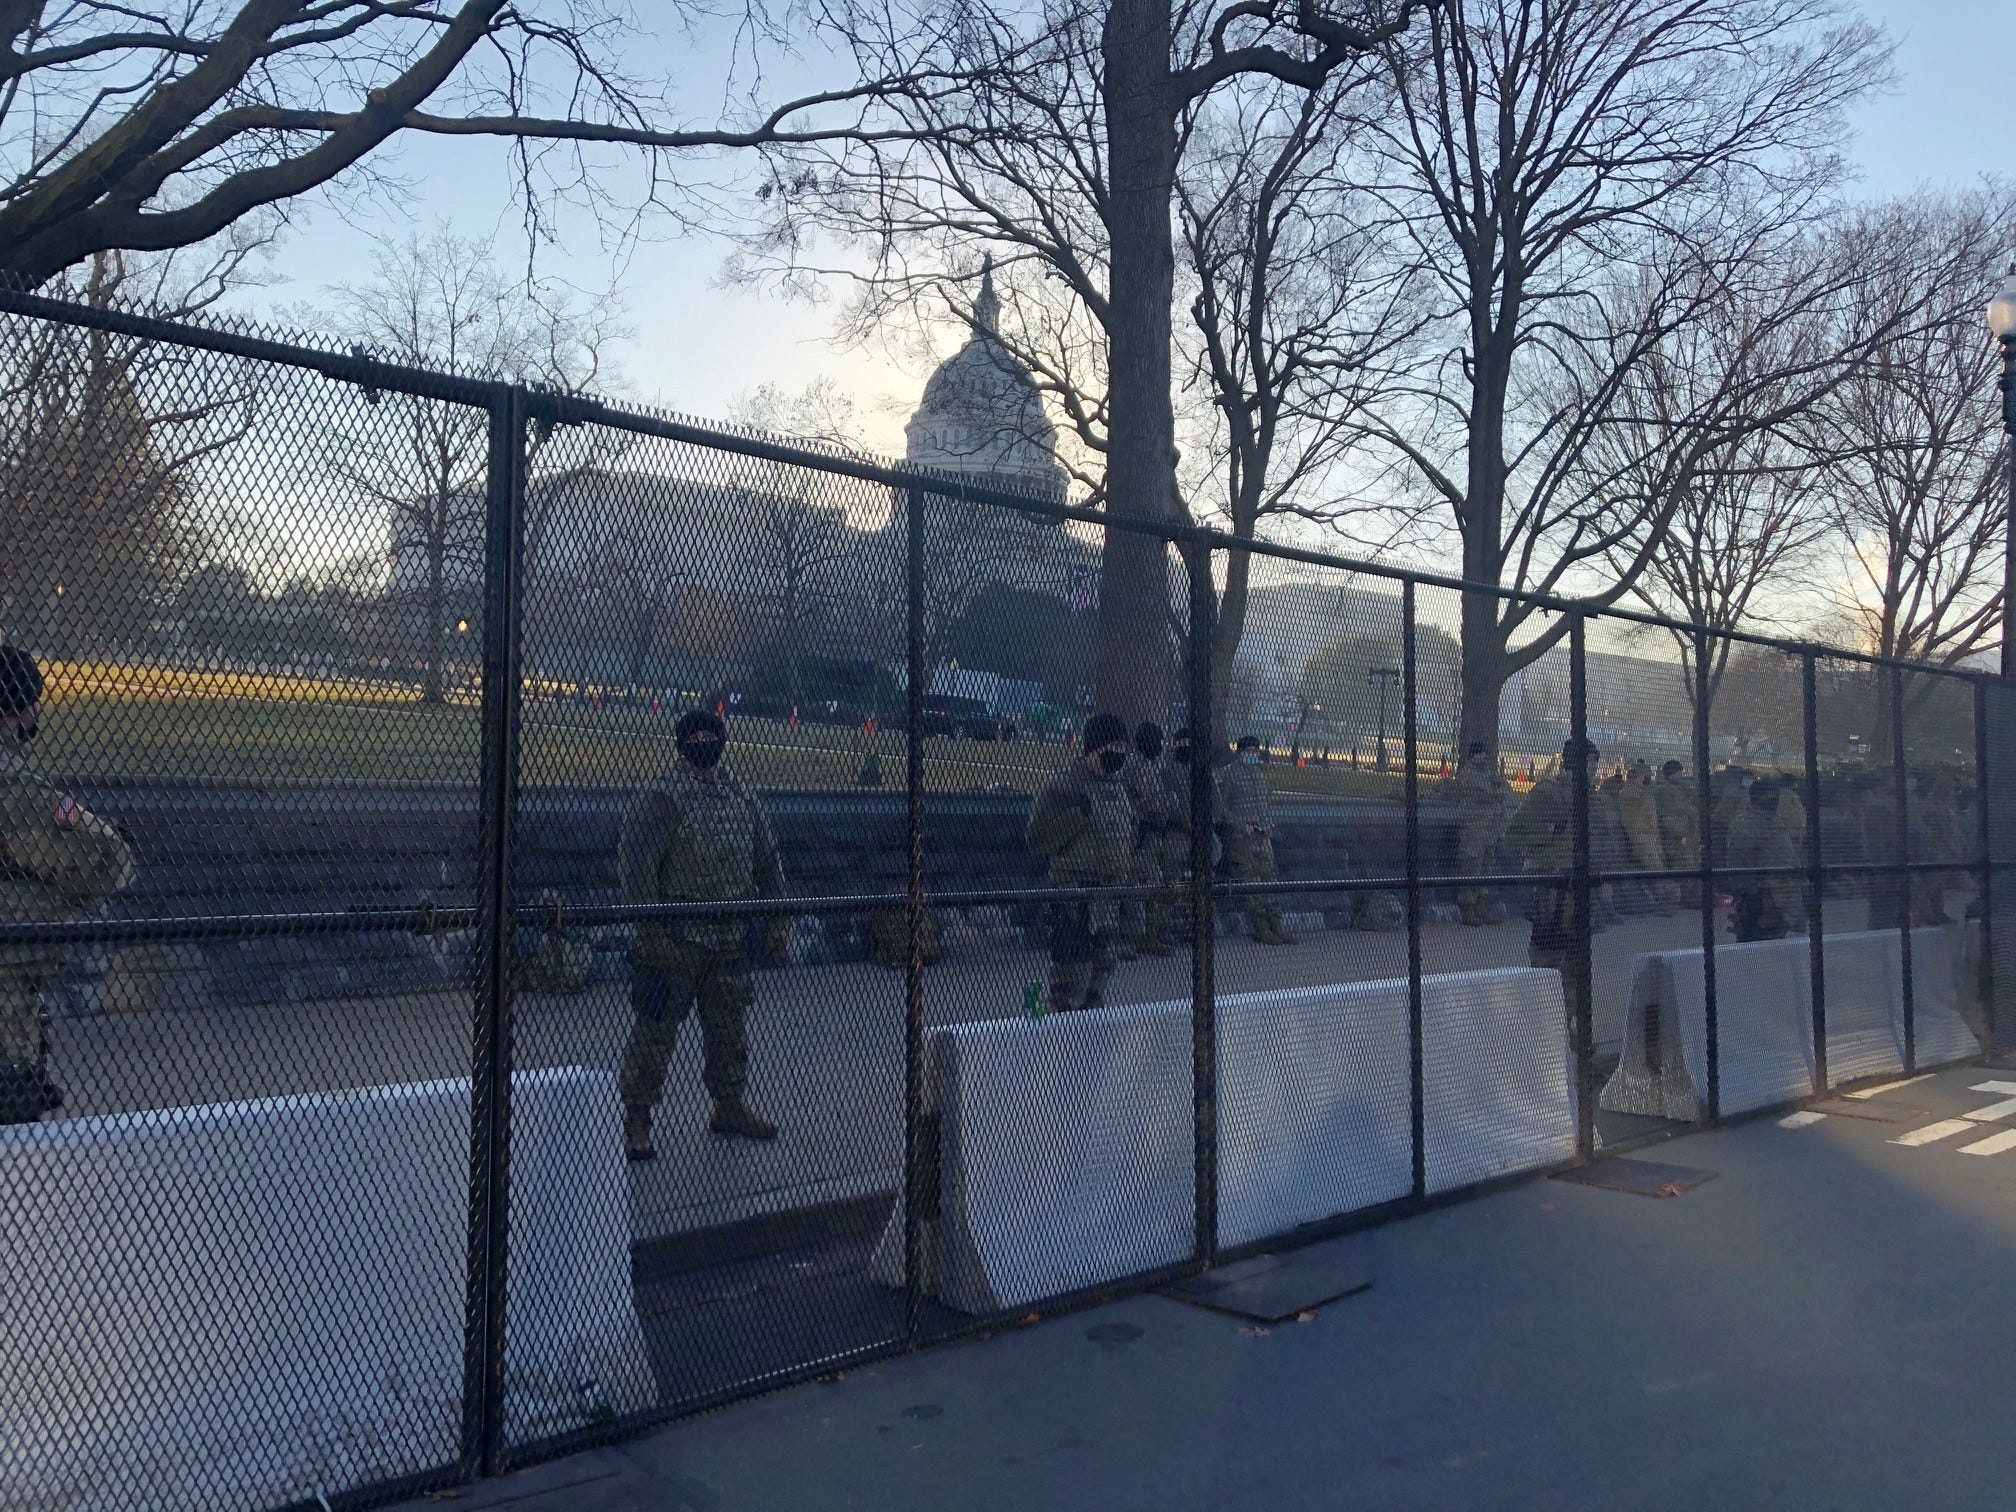 Capitol Police arrest Virginia man who tried to pass security checkpoint with weapons,  unauthorized  inauguration credential